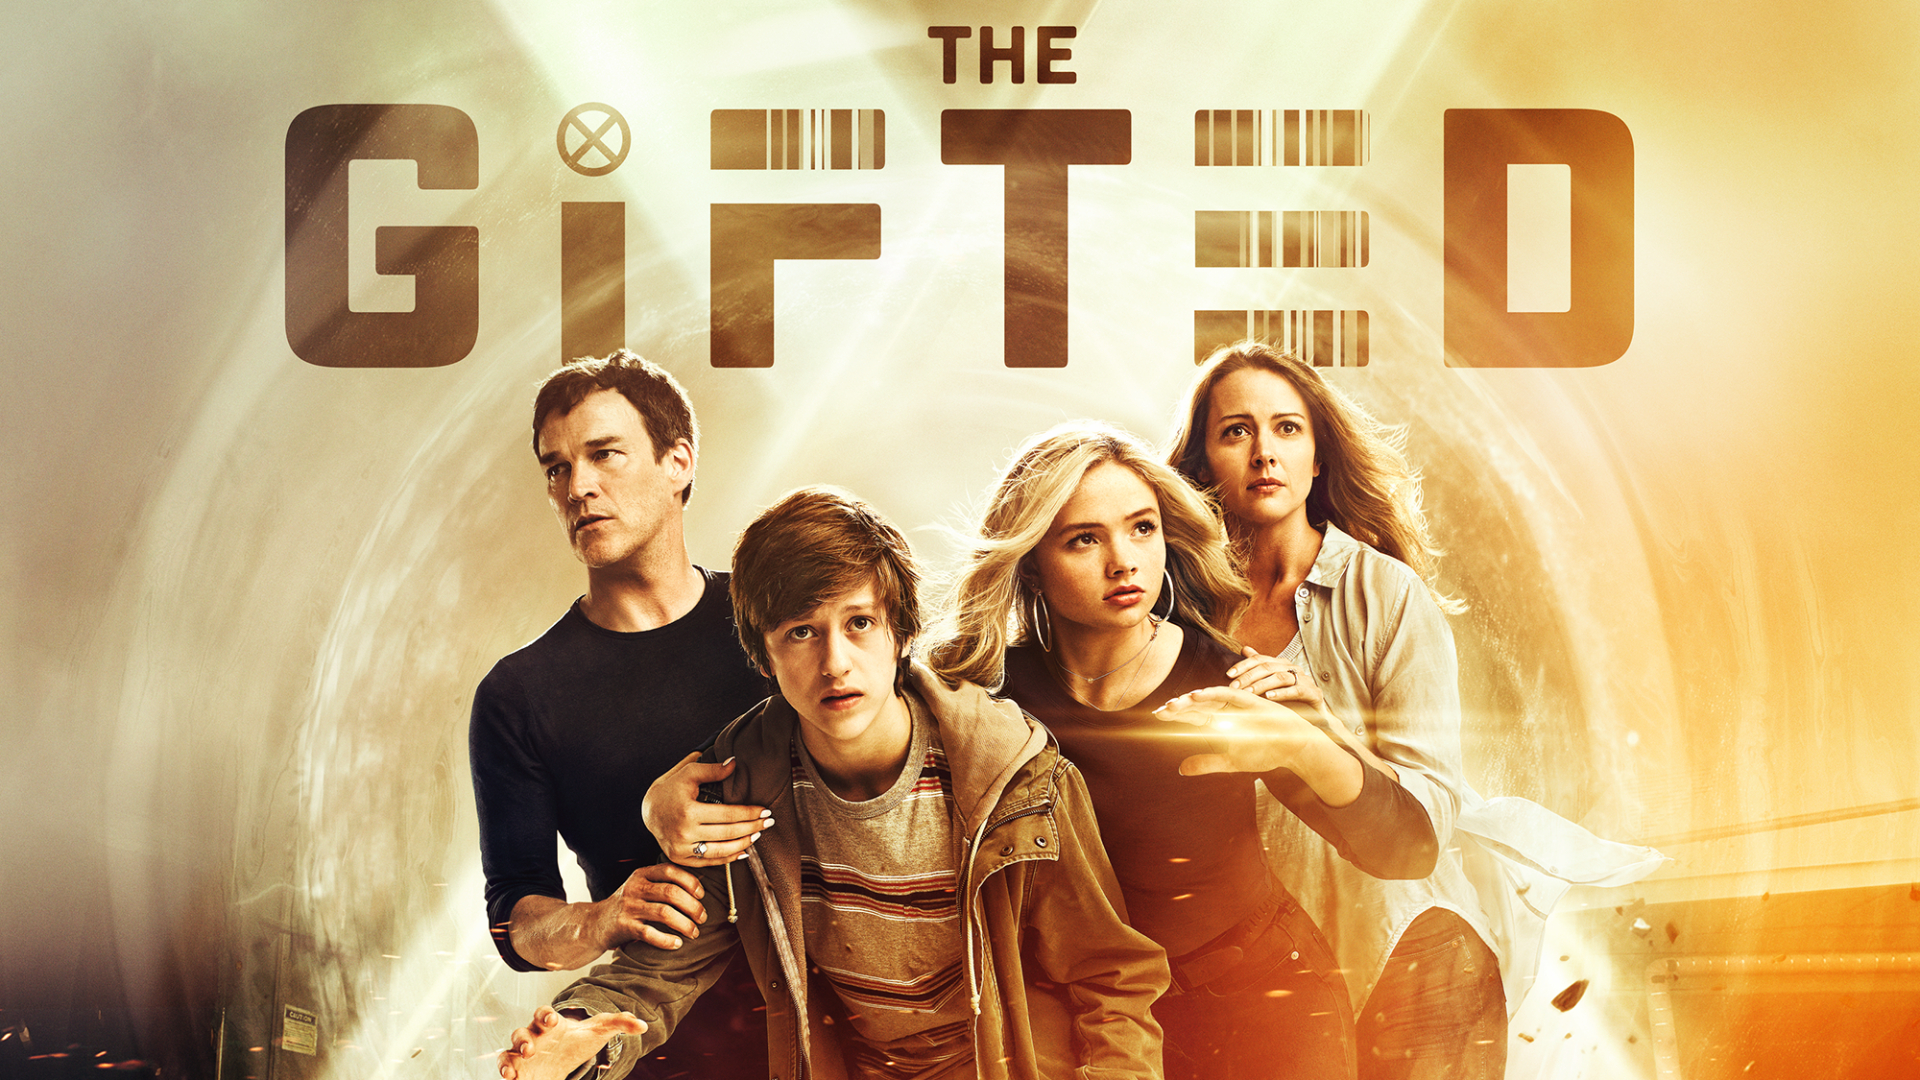 The Gifted - Season 1 (New) - Mp4 x264 AC3 1080p